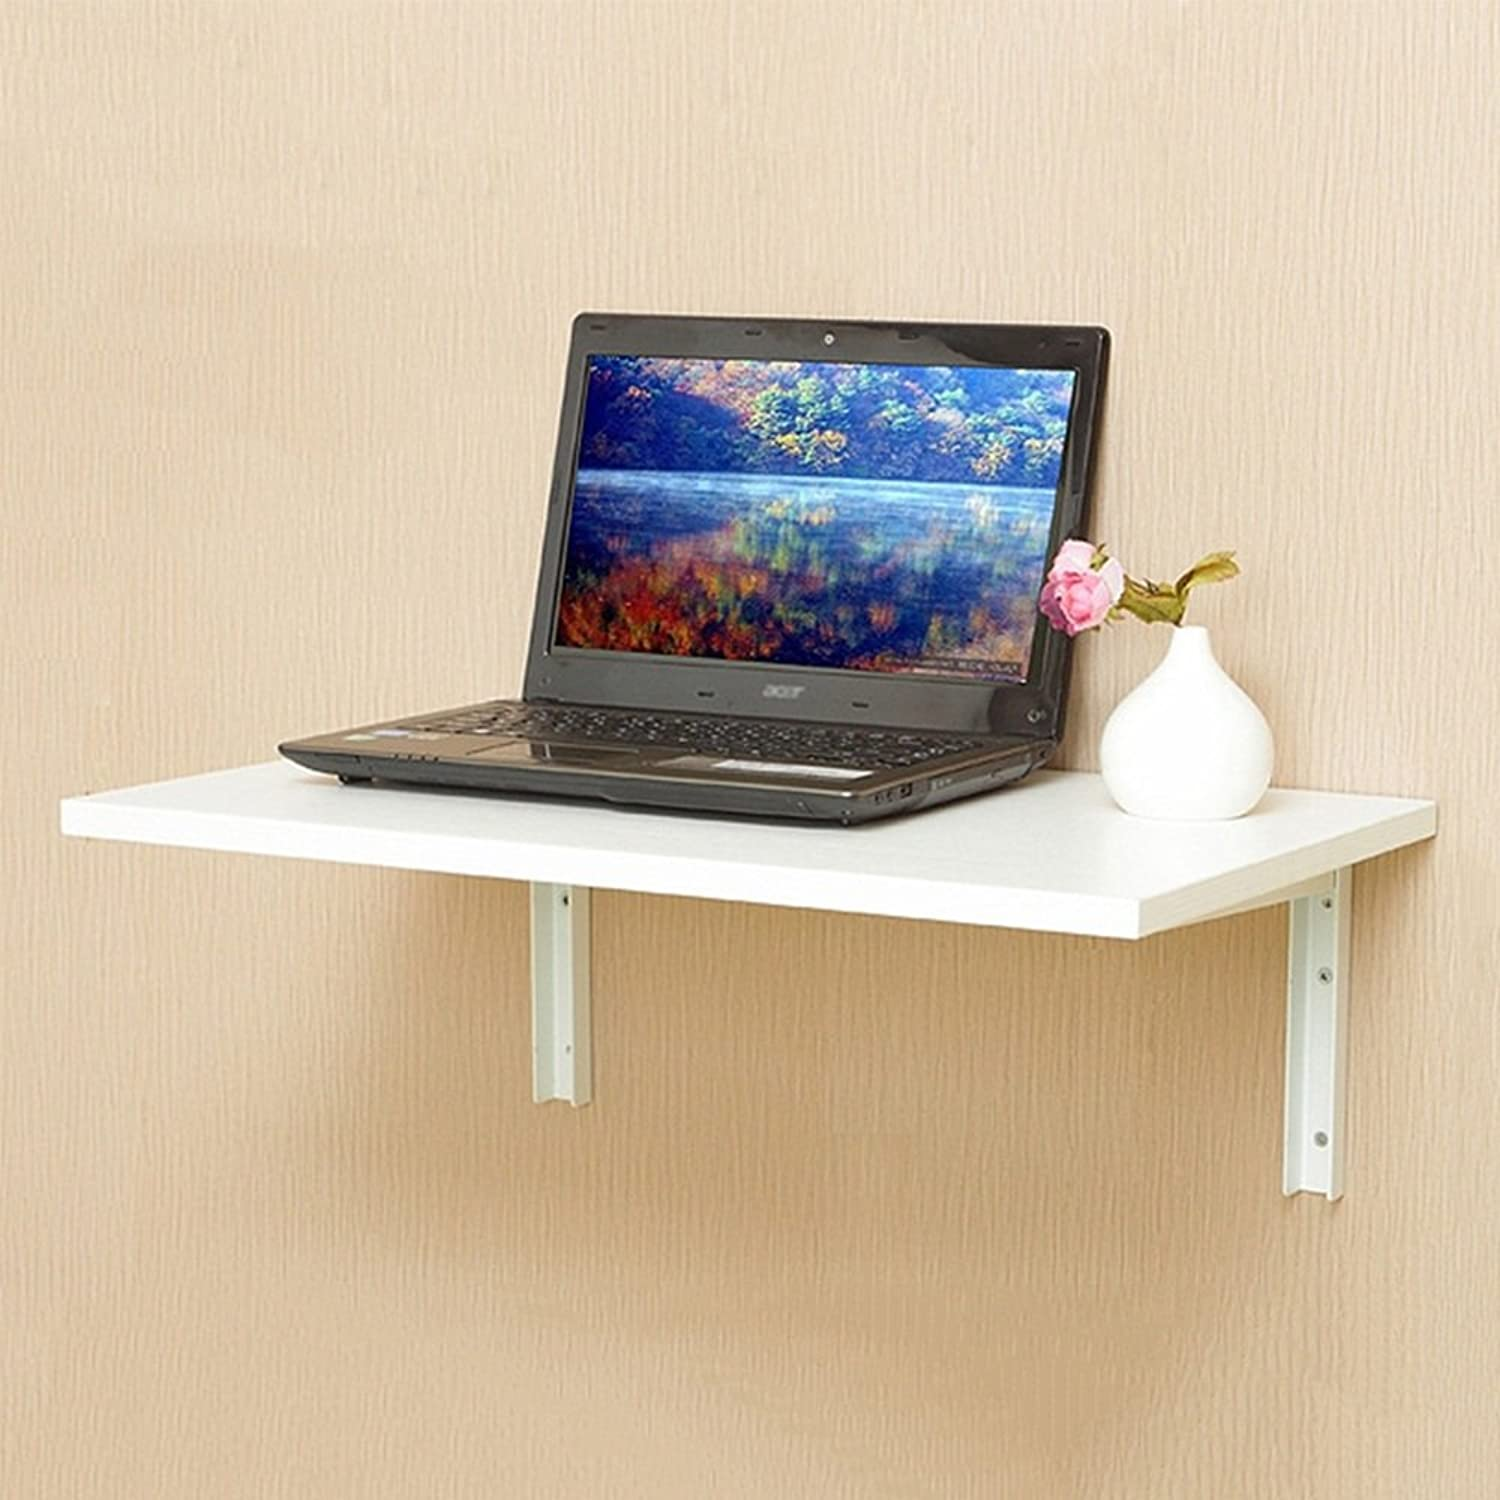 NAN Folding Table Wall Shelf Wall by The Desk Size Optional Folding Tables (color   White, Size   60  40cm)